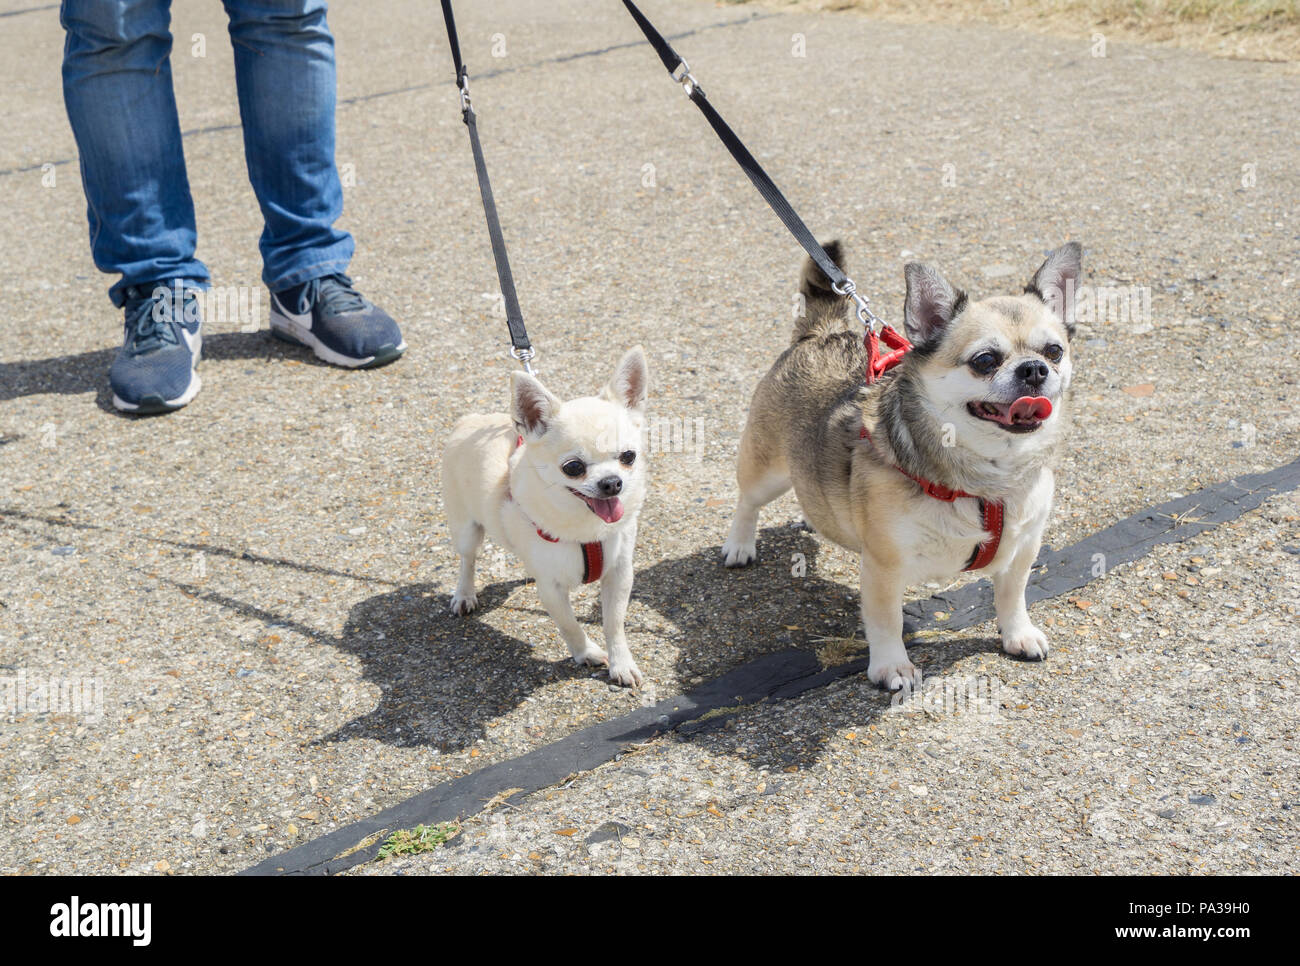 Two Chihuahua dogs on leads at Wings and wheels - Stock Image